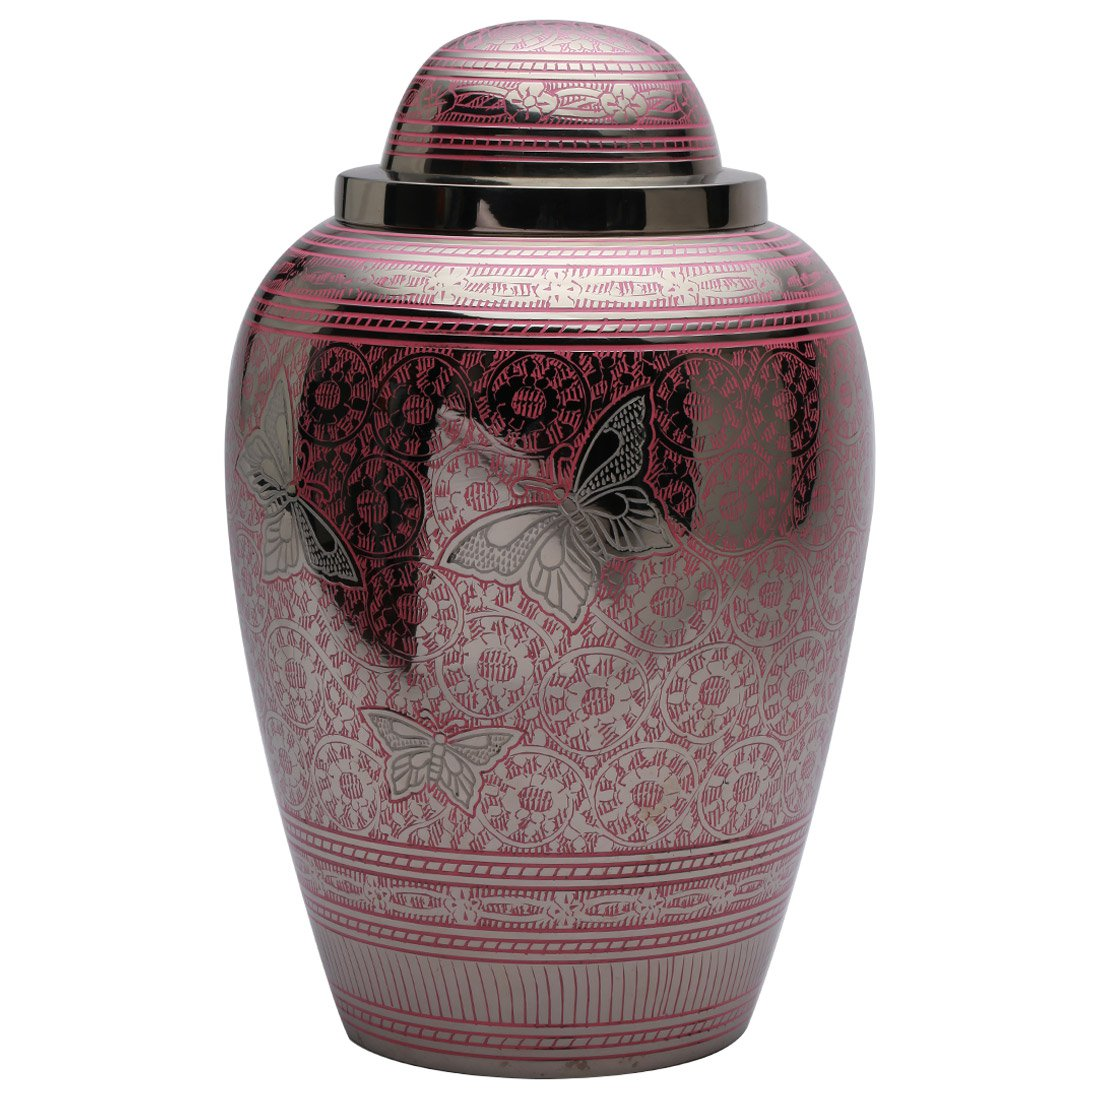 Portland Pink Butterflies Large Adult Cremation Urn, Big Funeral Urns for Ashes